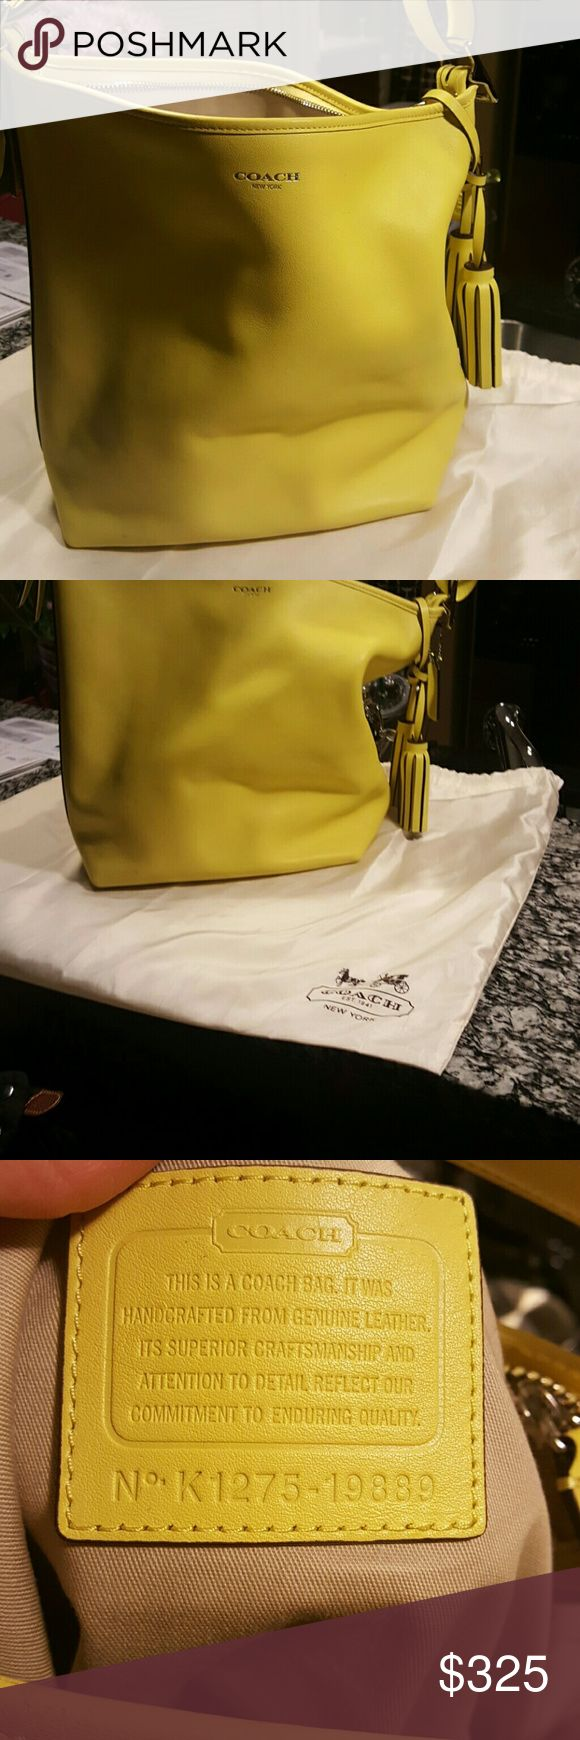 Authentic Coach Purse Yellow Coach Hobo Bag...great for spring. Brand new! Coach Bags Shoulder Bags